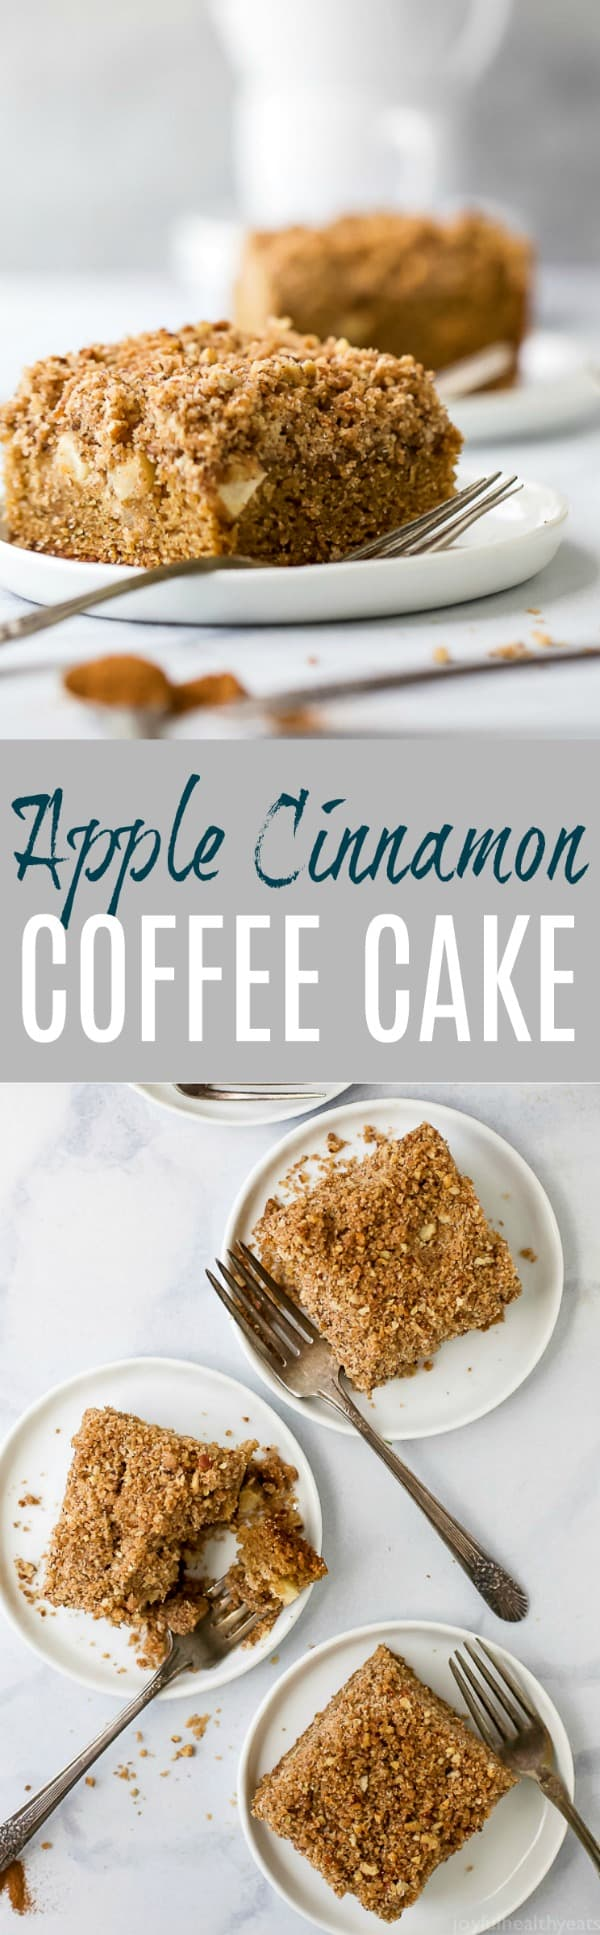 Pinterest image for Apple Cinnamon Coffee Cake